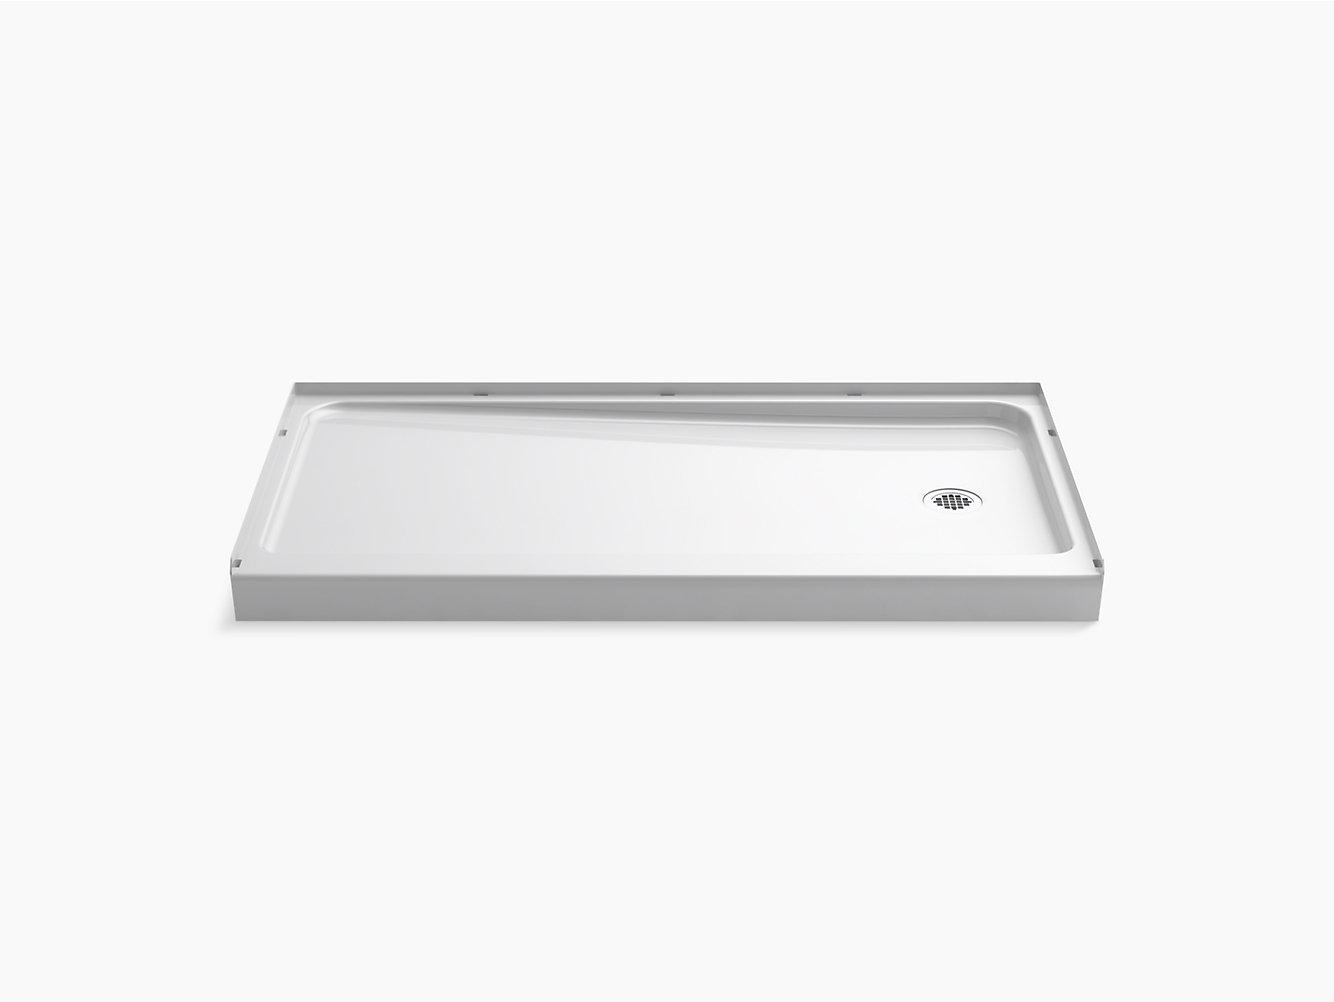 base rectangle bathroom enclosures plus low kohler tray shower x level rgb trays